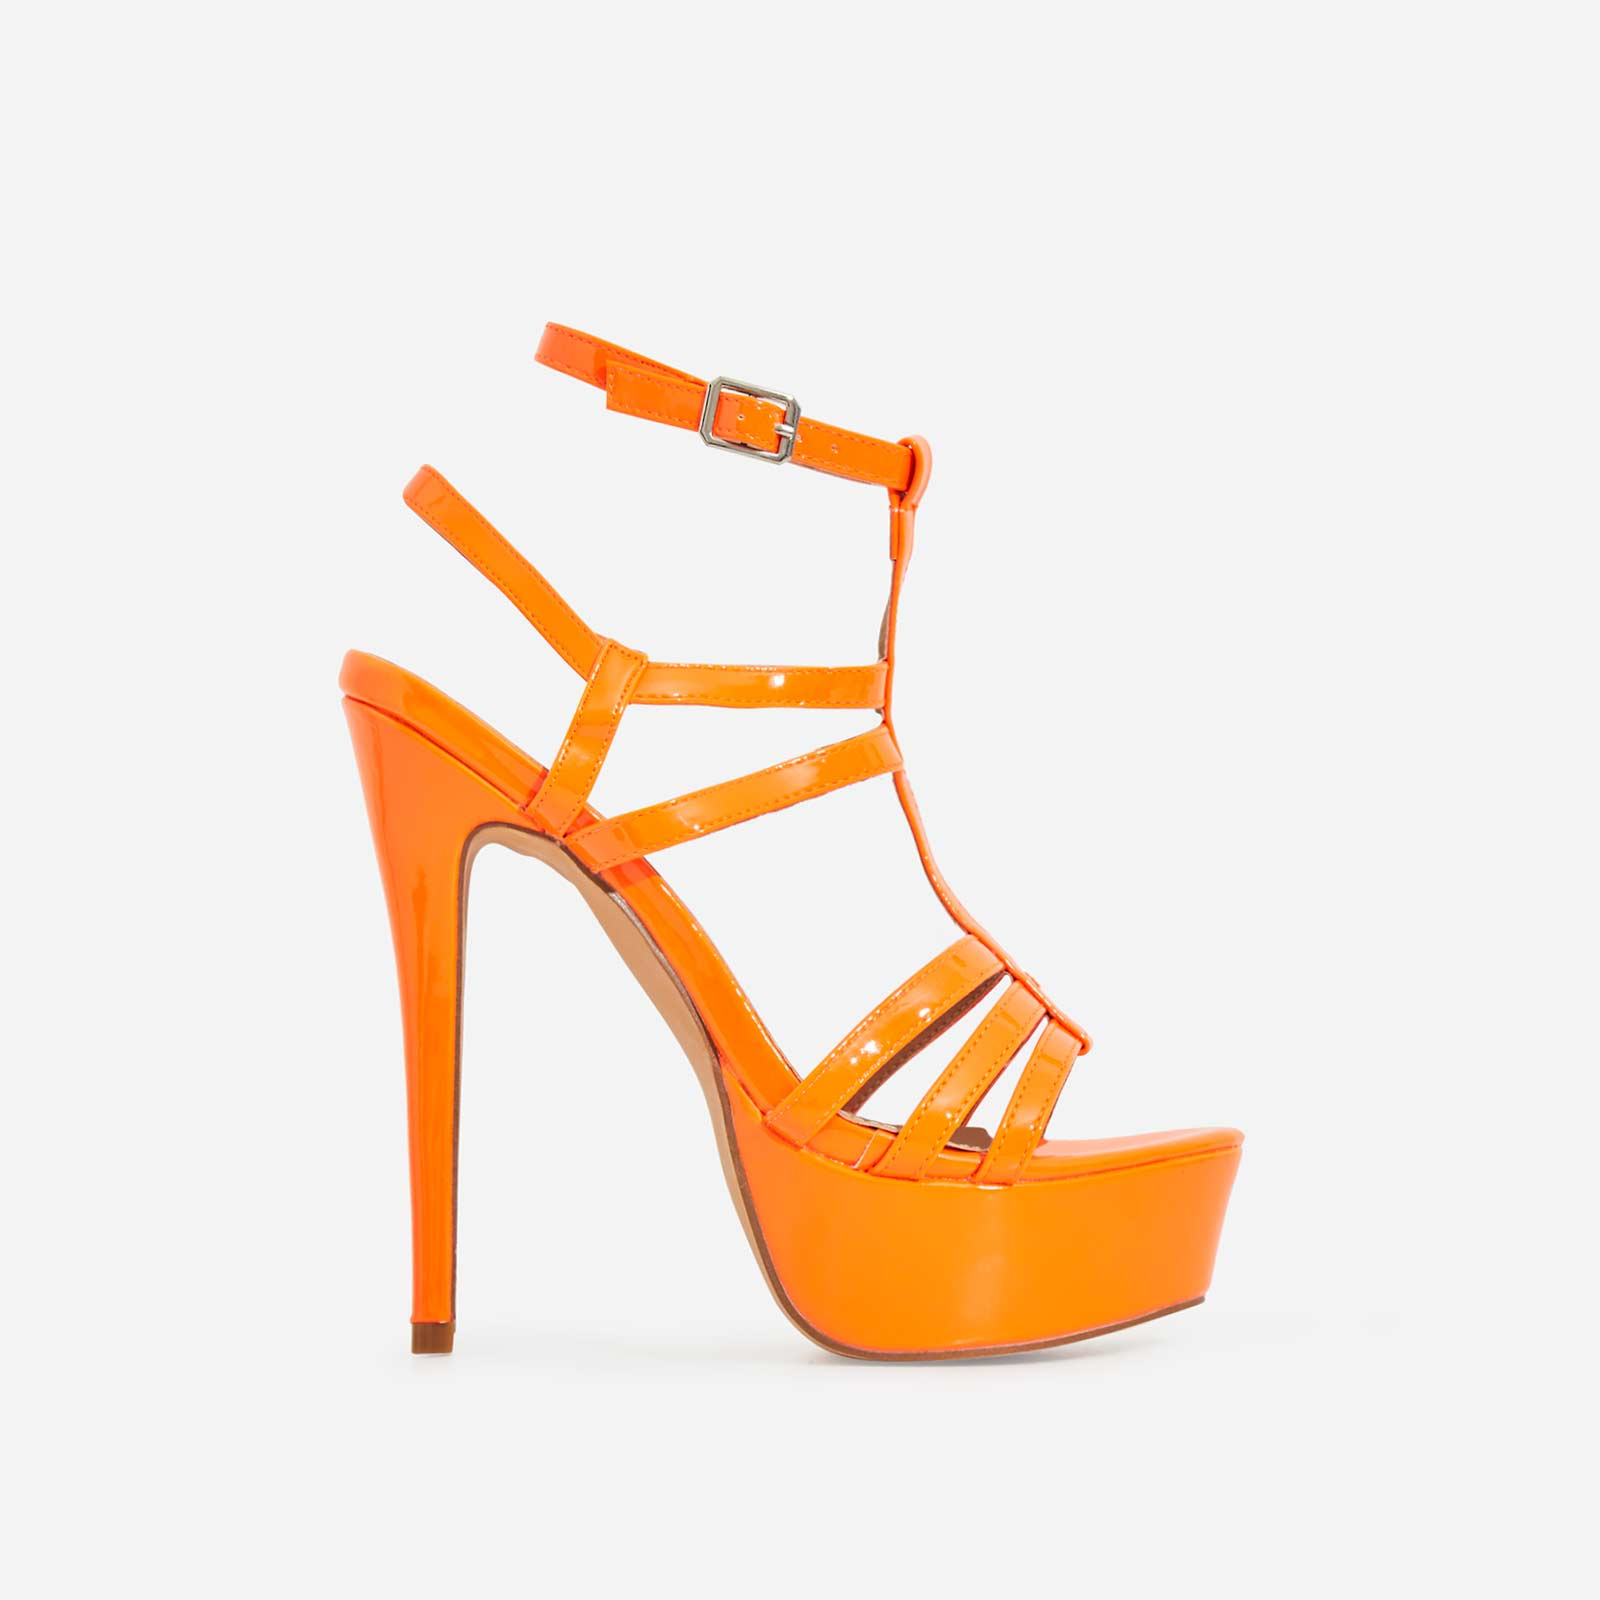 Iconic Cage Platform Heel In Neon Orange Patent